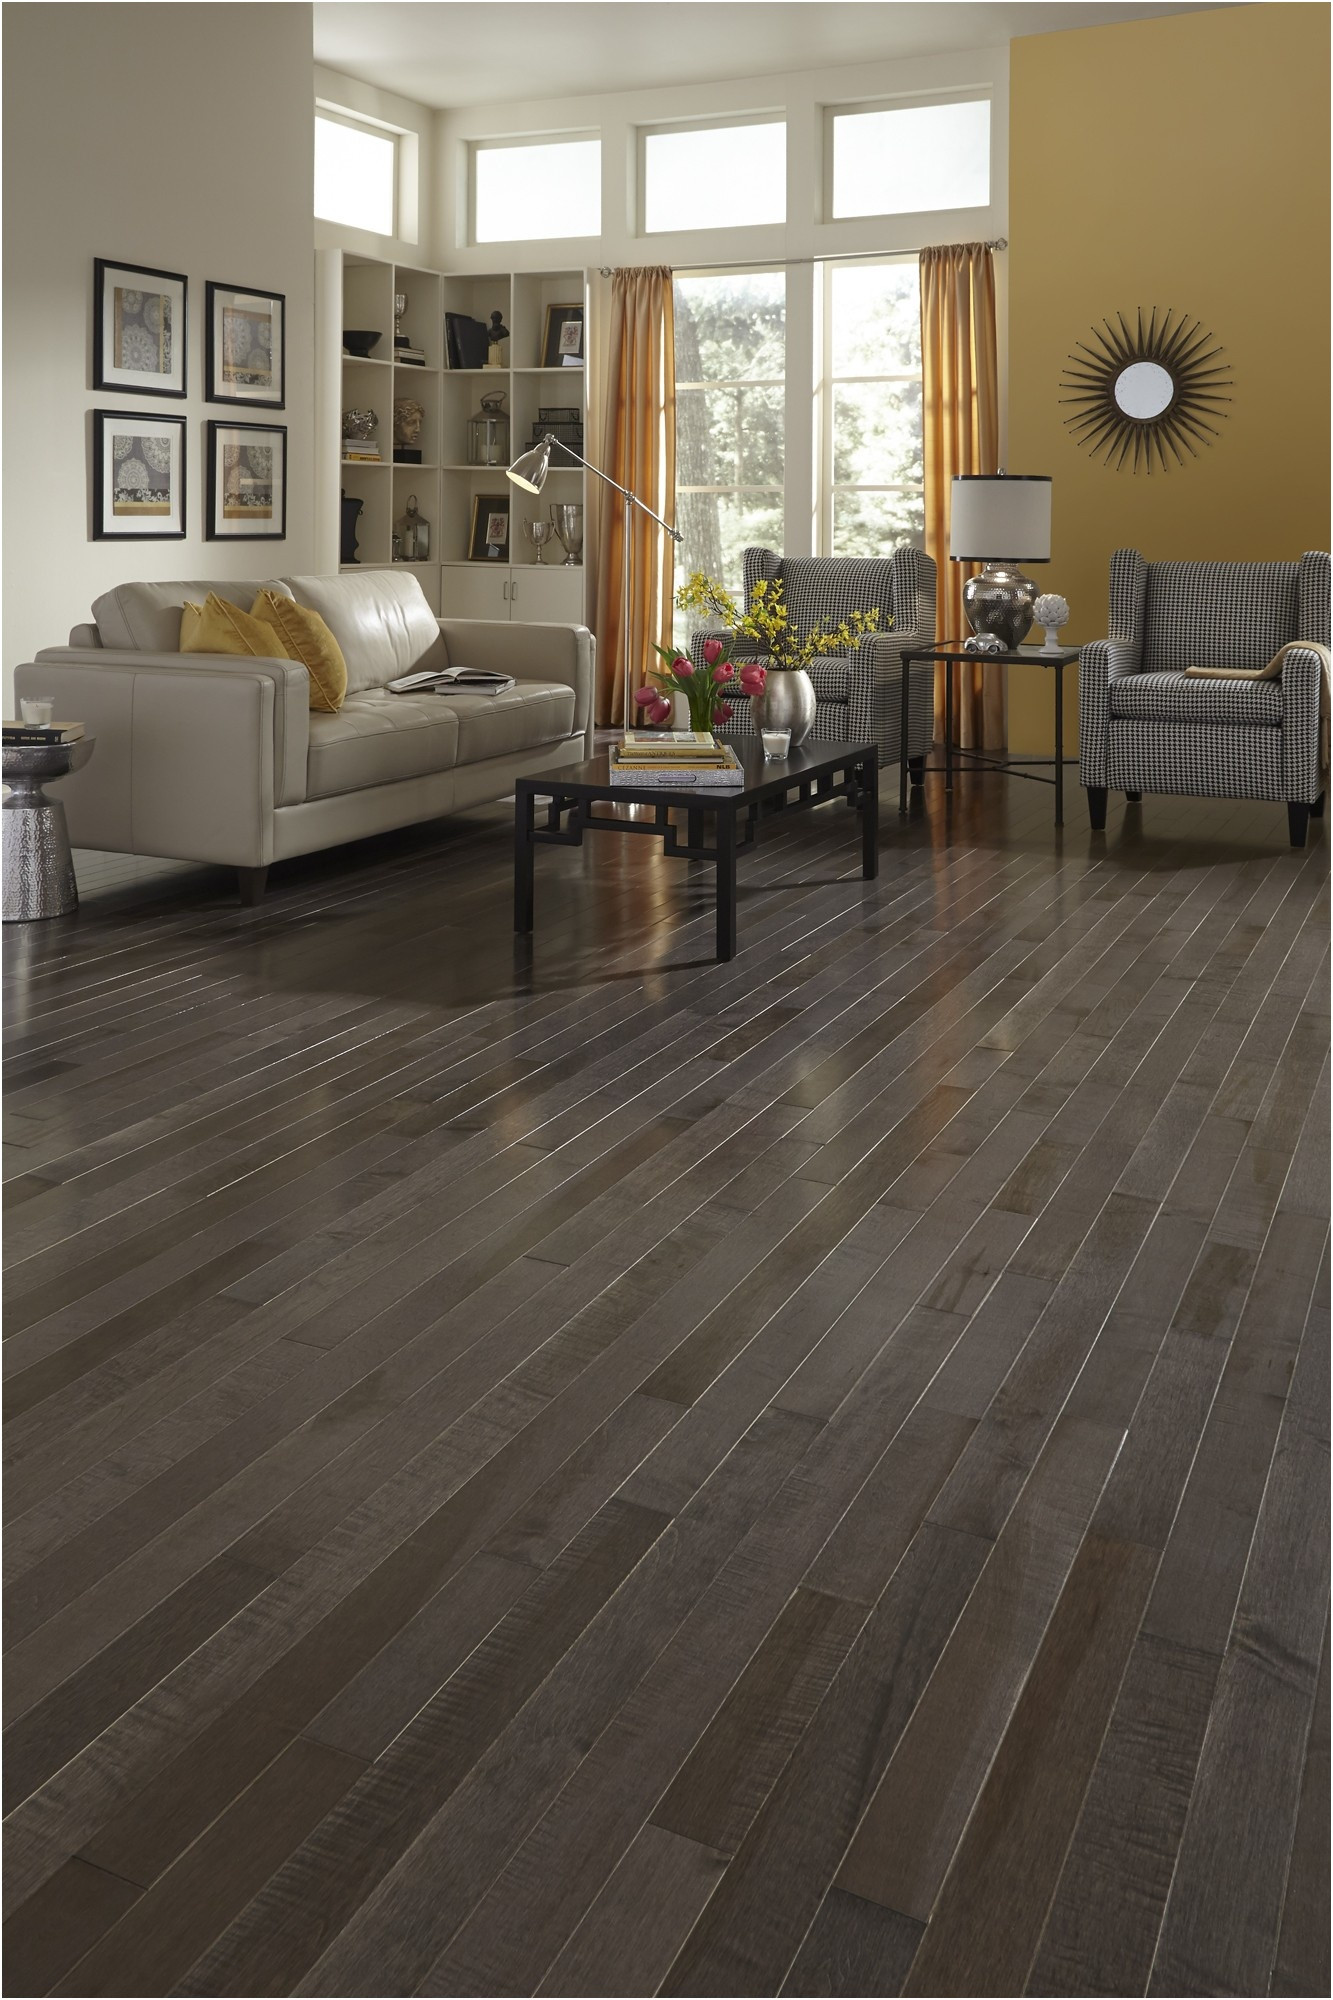 mirage hardwood flooring prices of where to buy mirage flooring flooring design inside where to buy mirage flooring stock chair glides for hardwood floors awesome pr125 1 1 4